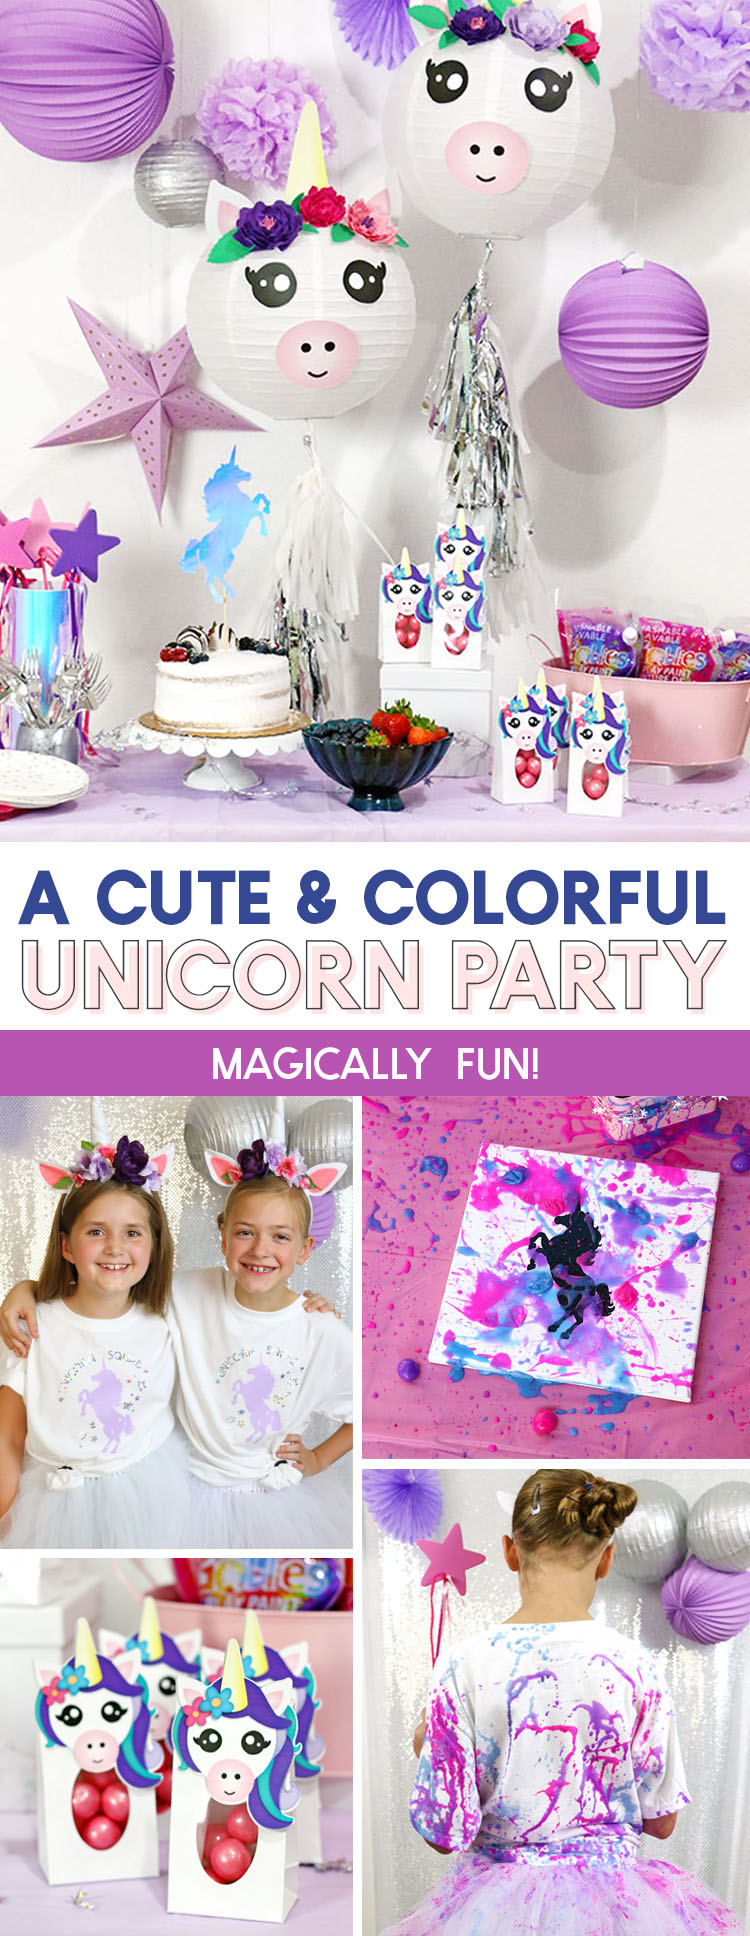 a cute and colorful unicorn party with goblies play paint